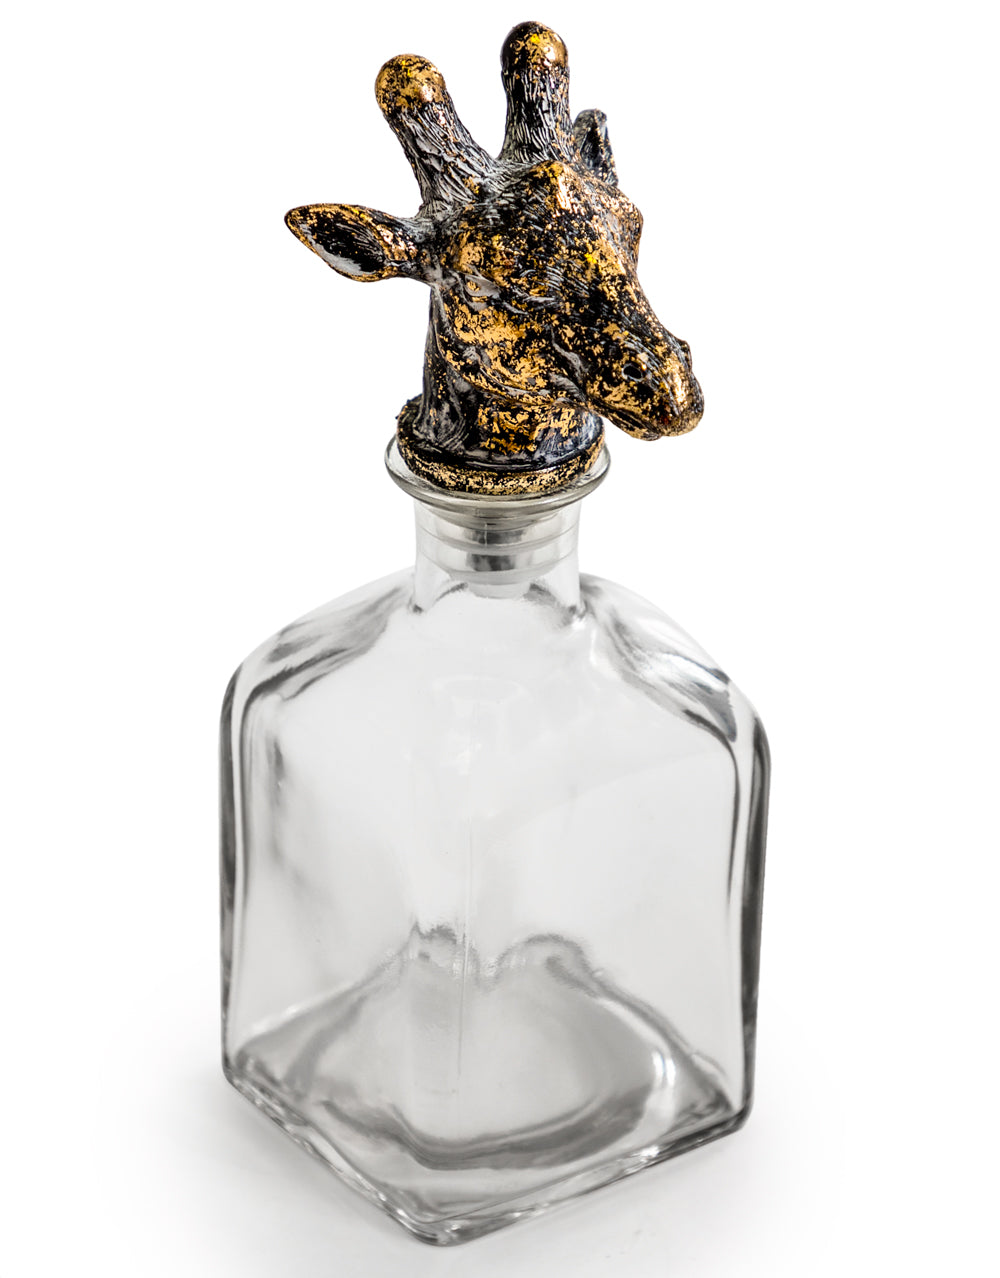 Glass Bottle with Giraffe Stopper